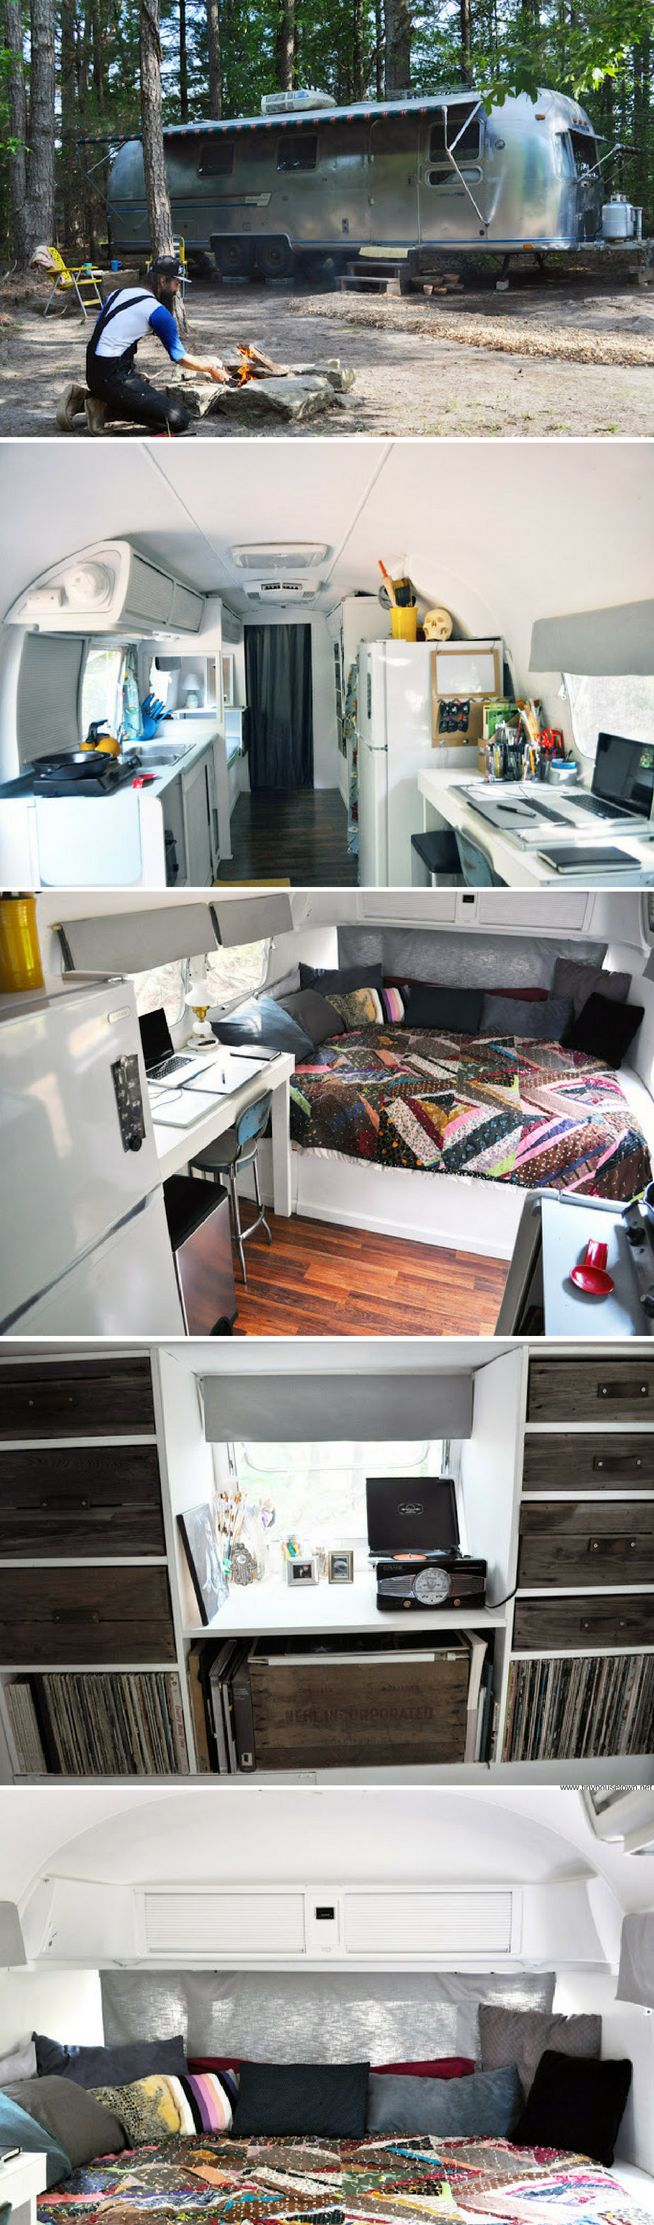 A 188 sq ft home made from a remodelled Airstream trailer